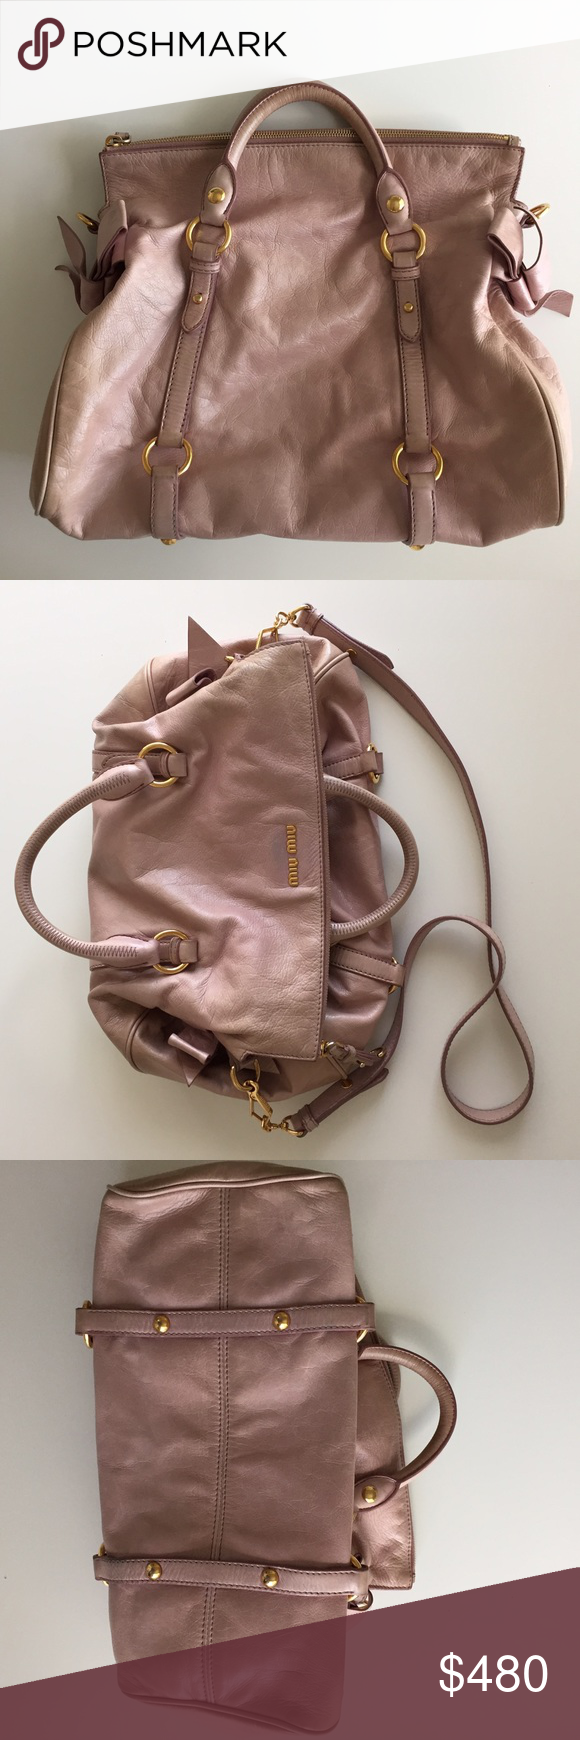 146713ac7eaa Miu miu vitello lux bow fold over satchel bag Just sold authentic mini size miu  miu